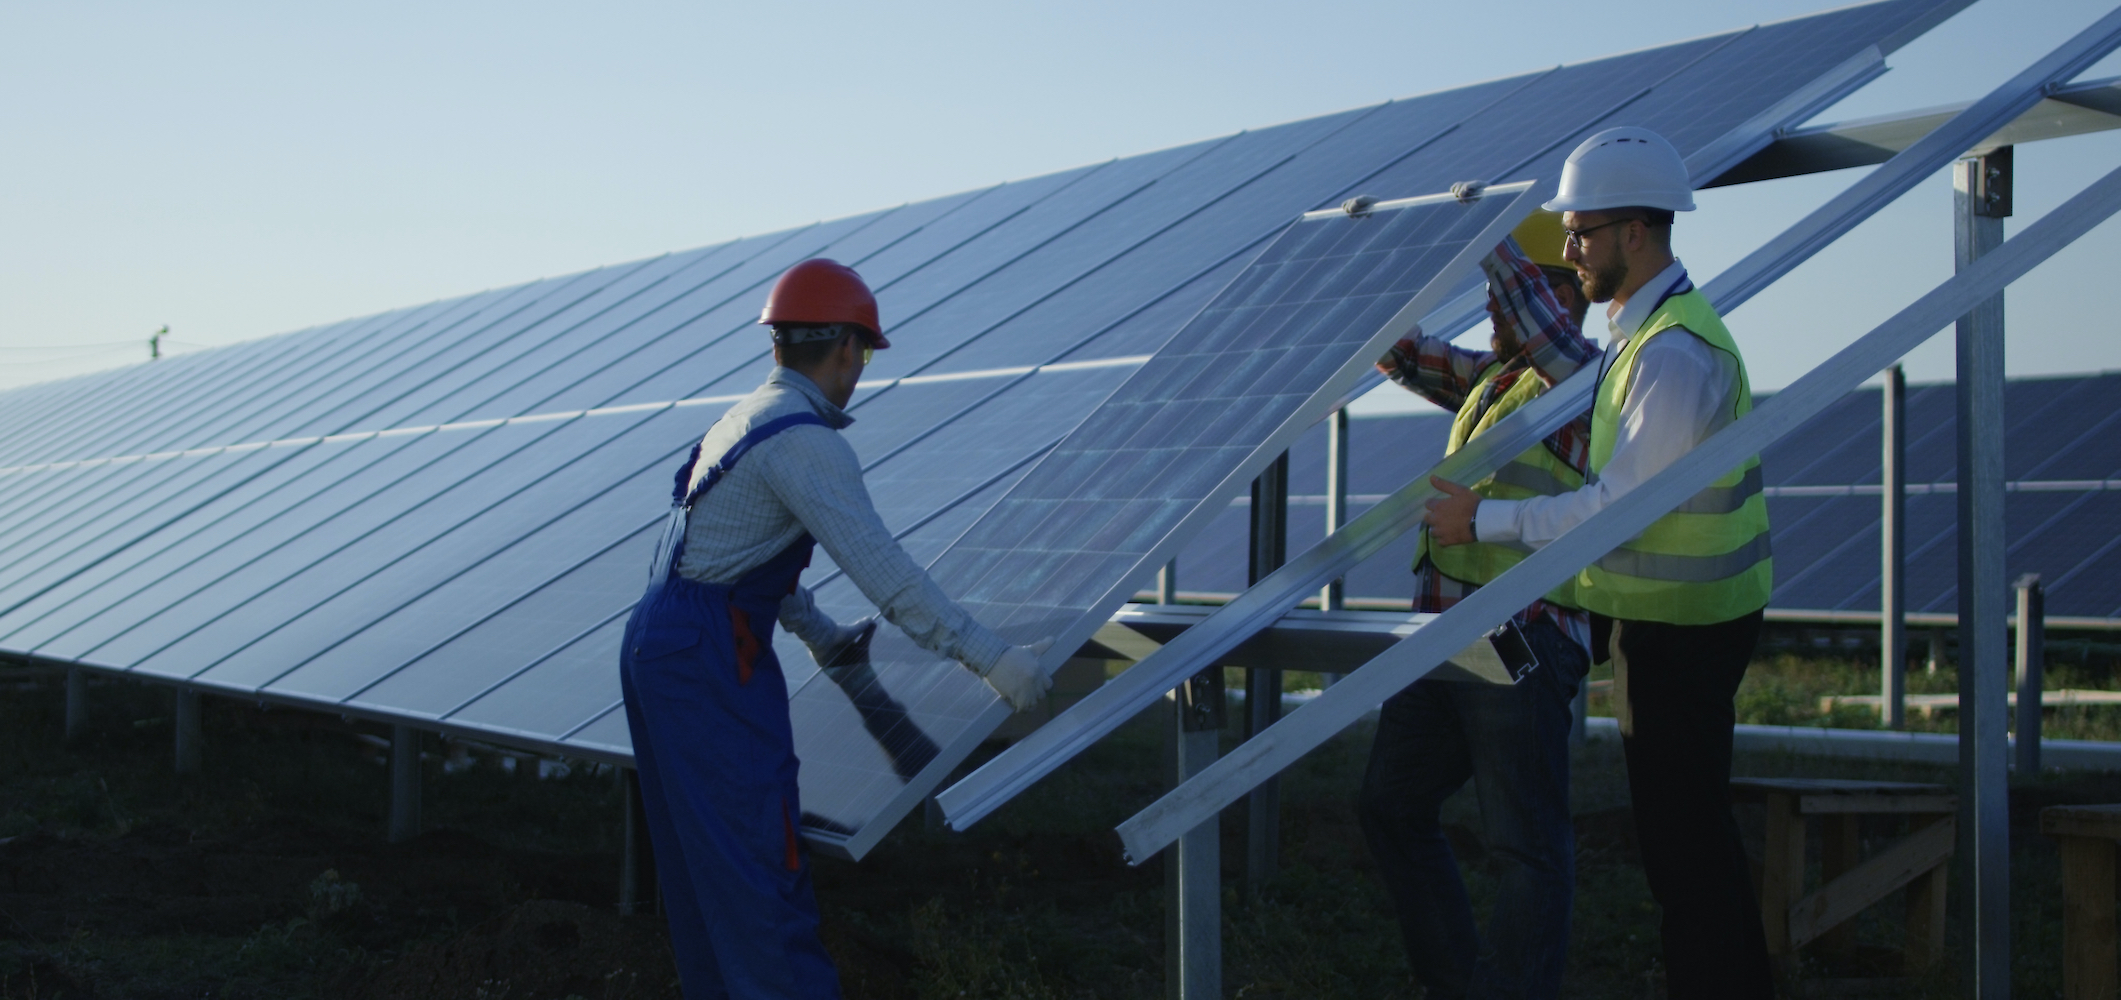 Create 23,000 jobs and transition to 100% renewable energy by 2030